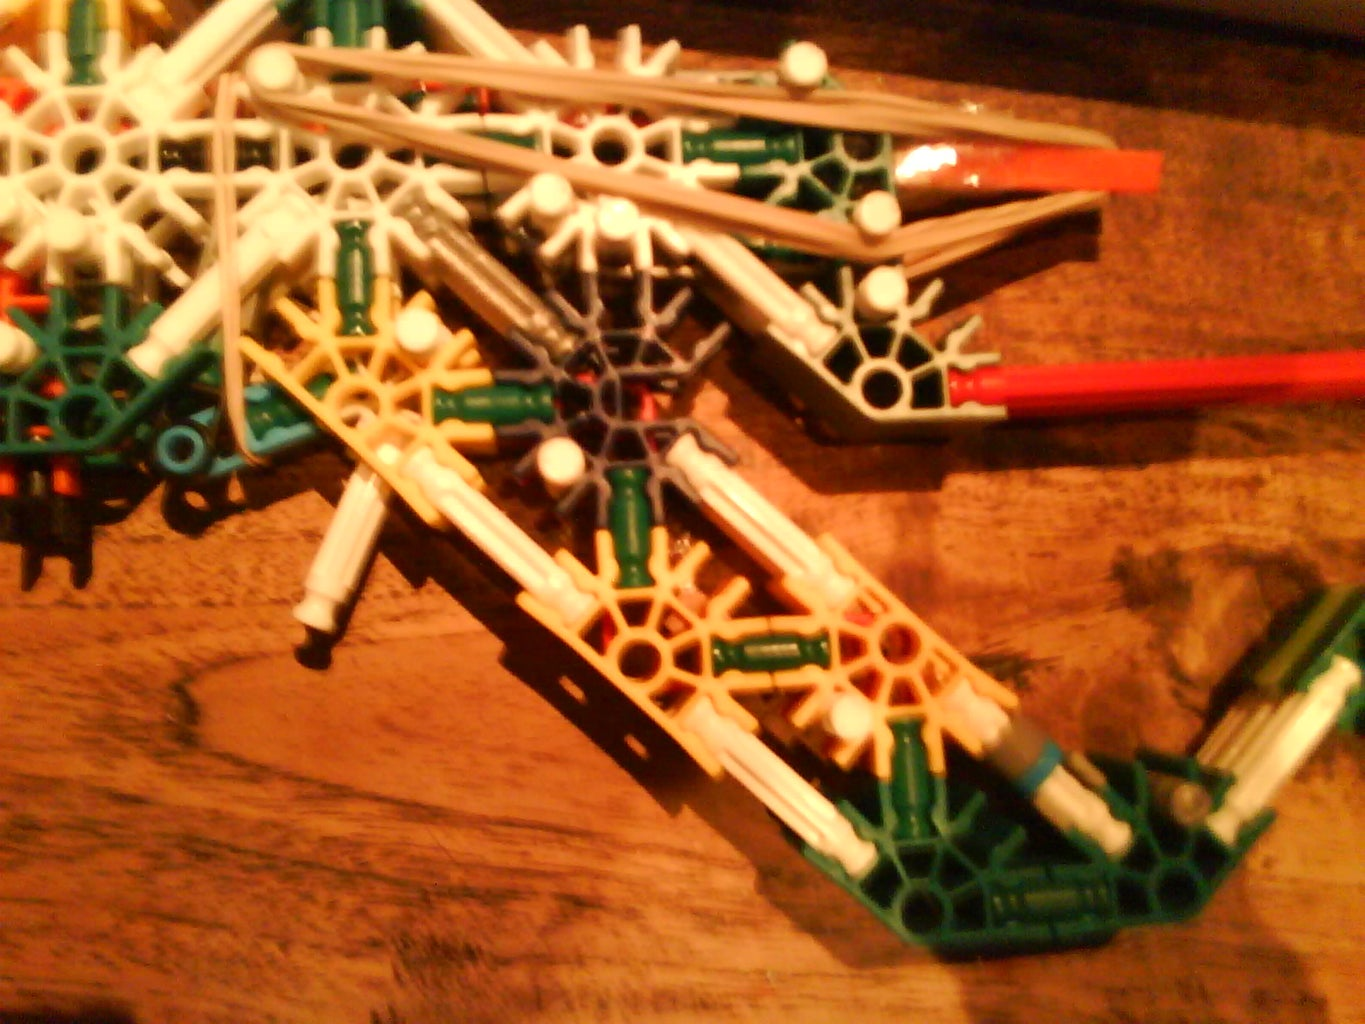 Knex Assault Rifle (with Detachable Mag)